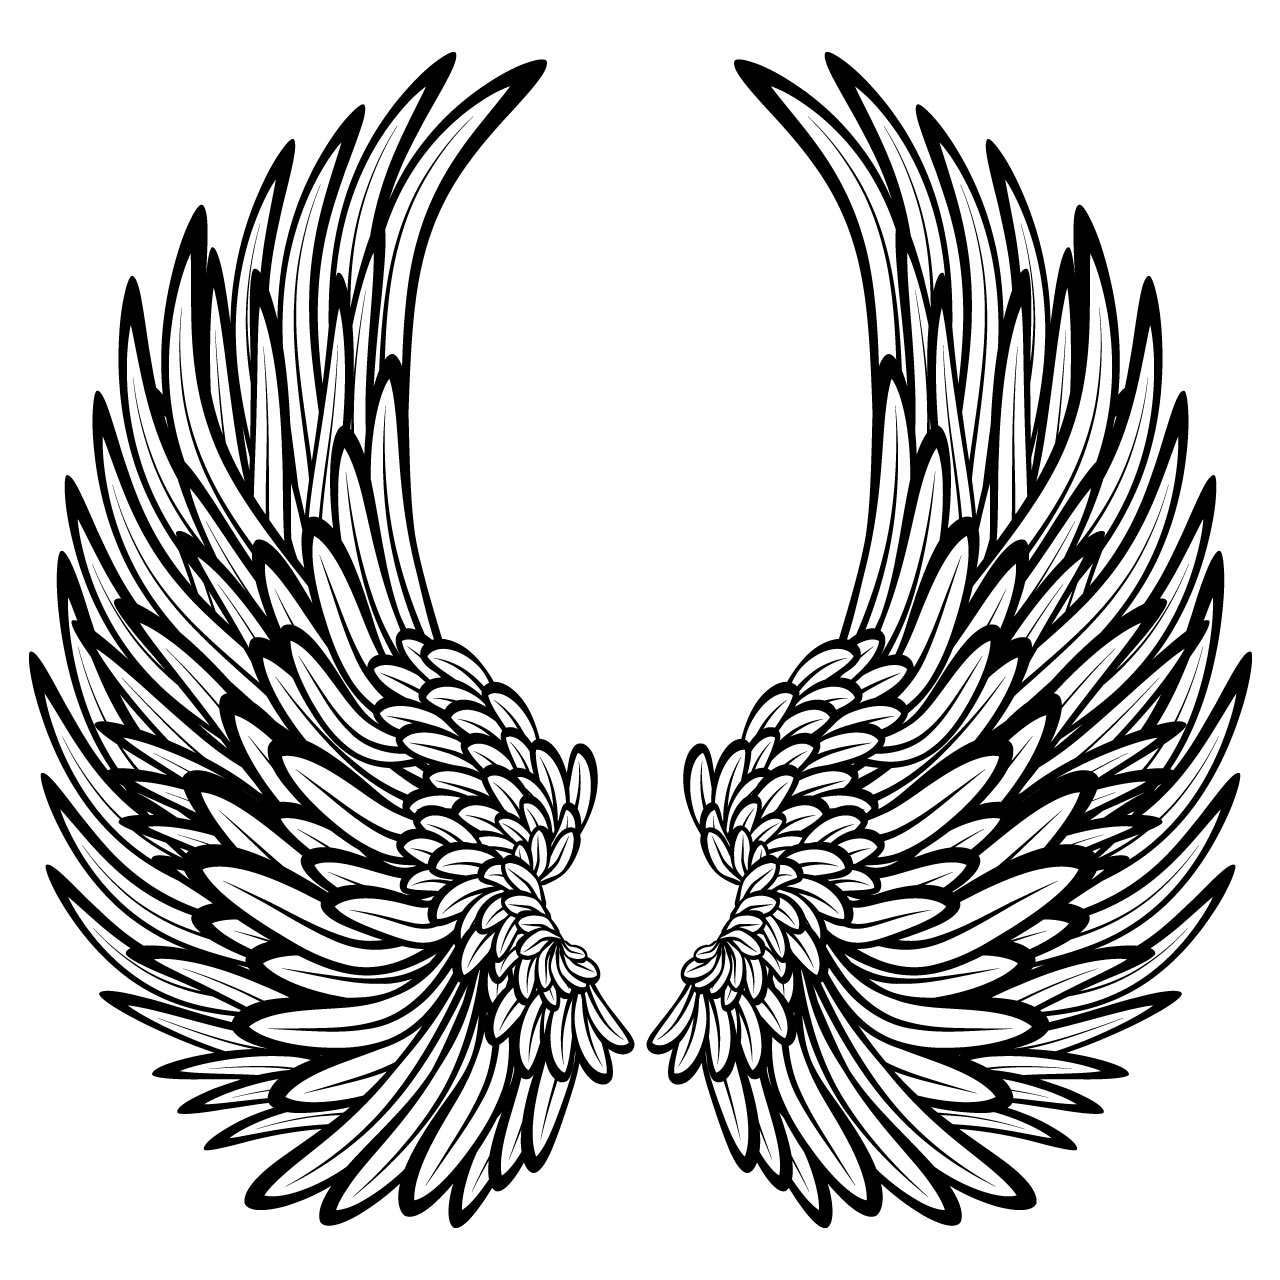 1280x1280 Cool Cross Drawings With Wings